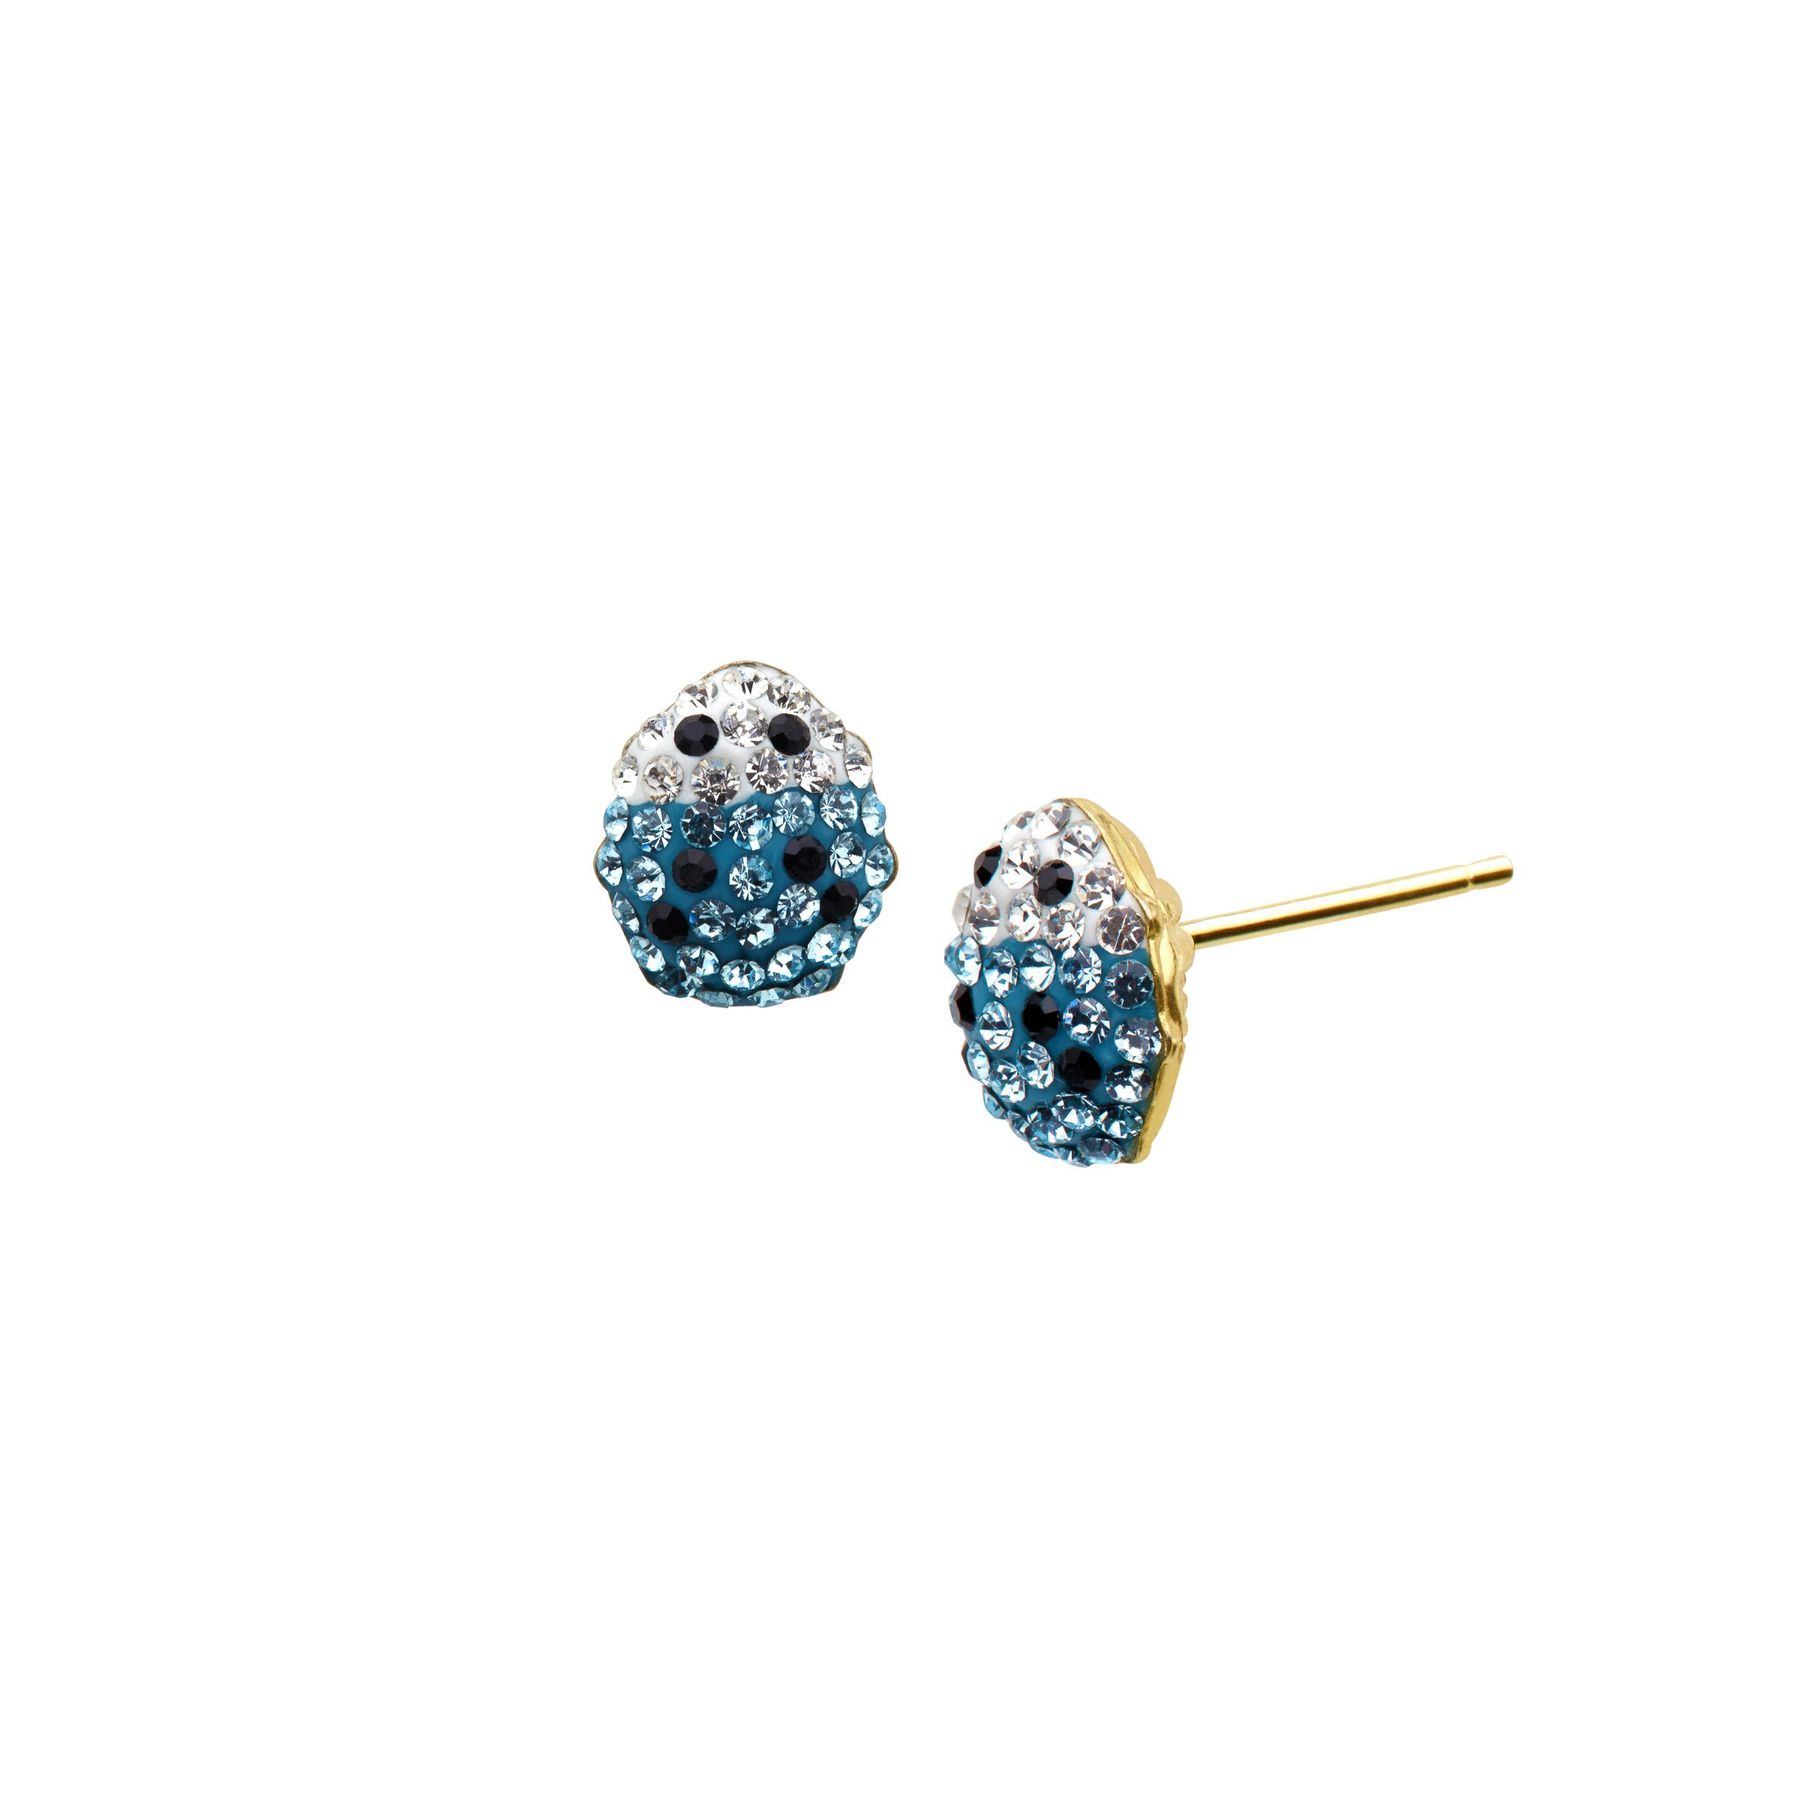 Girls Lady Bug Stud Earrings with Pink Swarovski Crystal in 14K Gold-Plated Sterling Silver